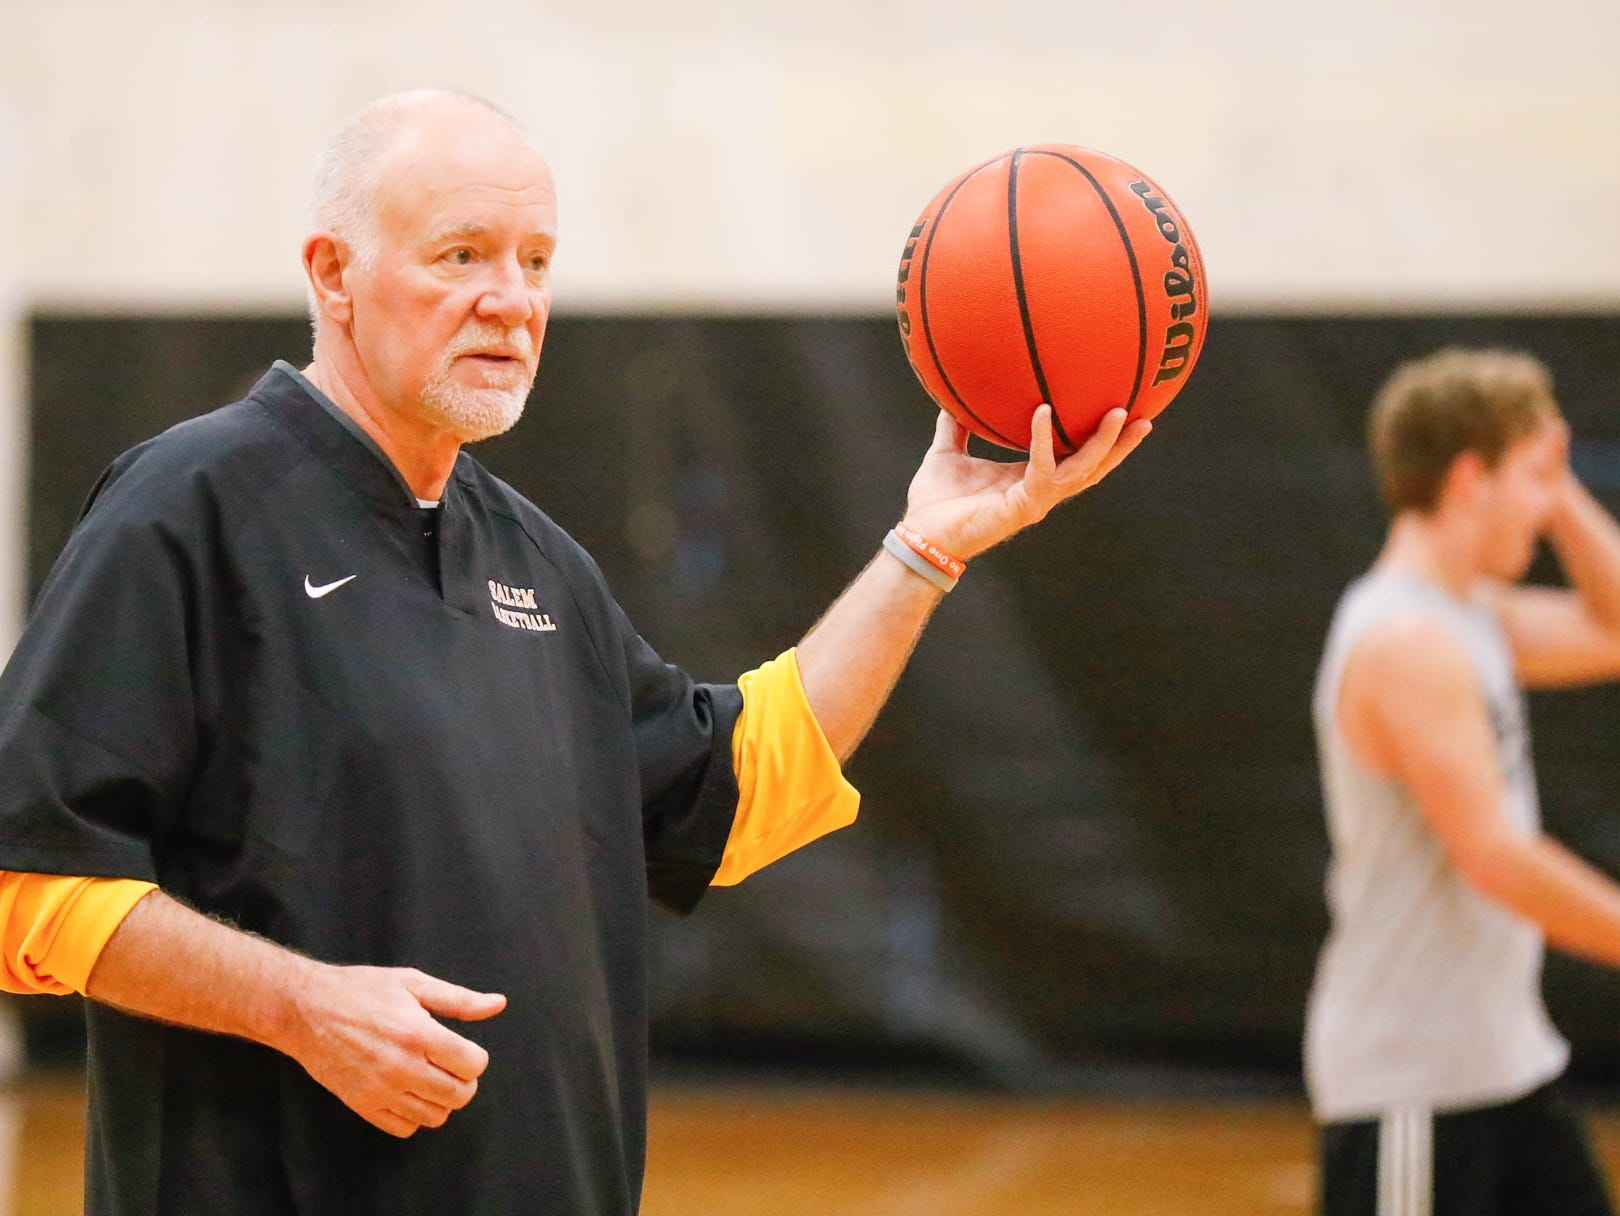 Salem High School Boys Basketball Coach, Mike Brown, runs a practice with his step son Jalen Pigg, not shown, at Salem High School in Salem Ind. on Tuesday, Jan. 23, 2019. Jalen, who was born with Down Syndrome, is now battling a form of leukemia but has lots of love and support from the team and his family.